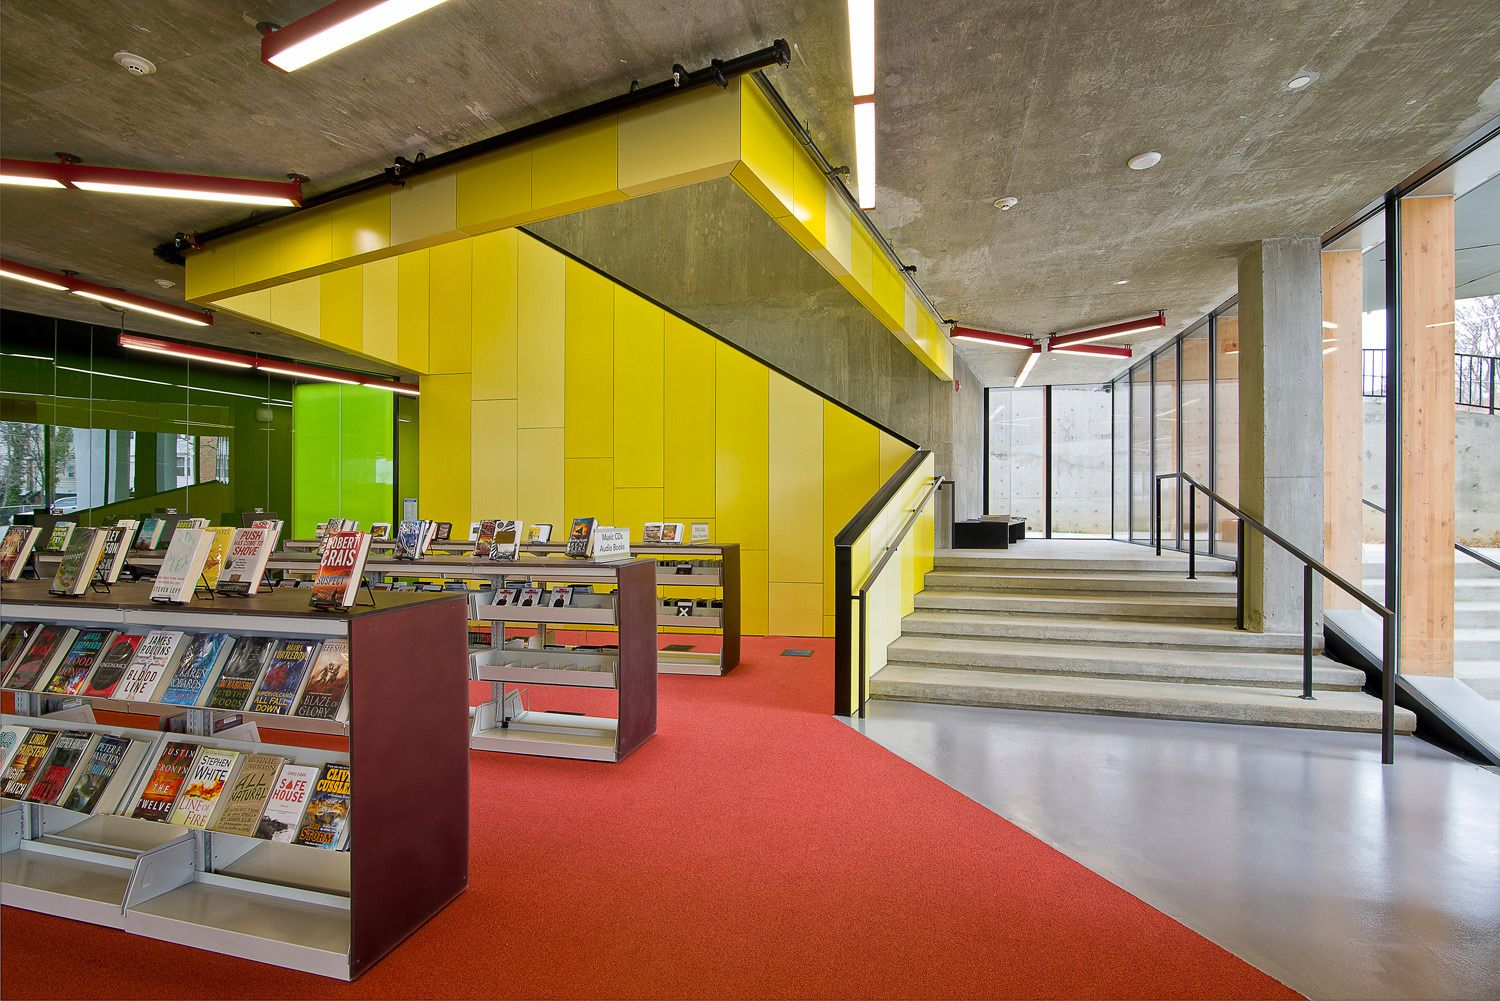 William O. Lockridge LibraryWashington, DCArchitect: David Adjaye, Adjaye Associates